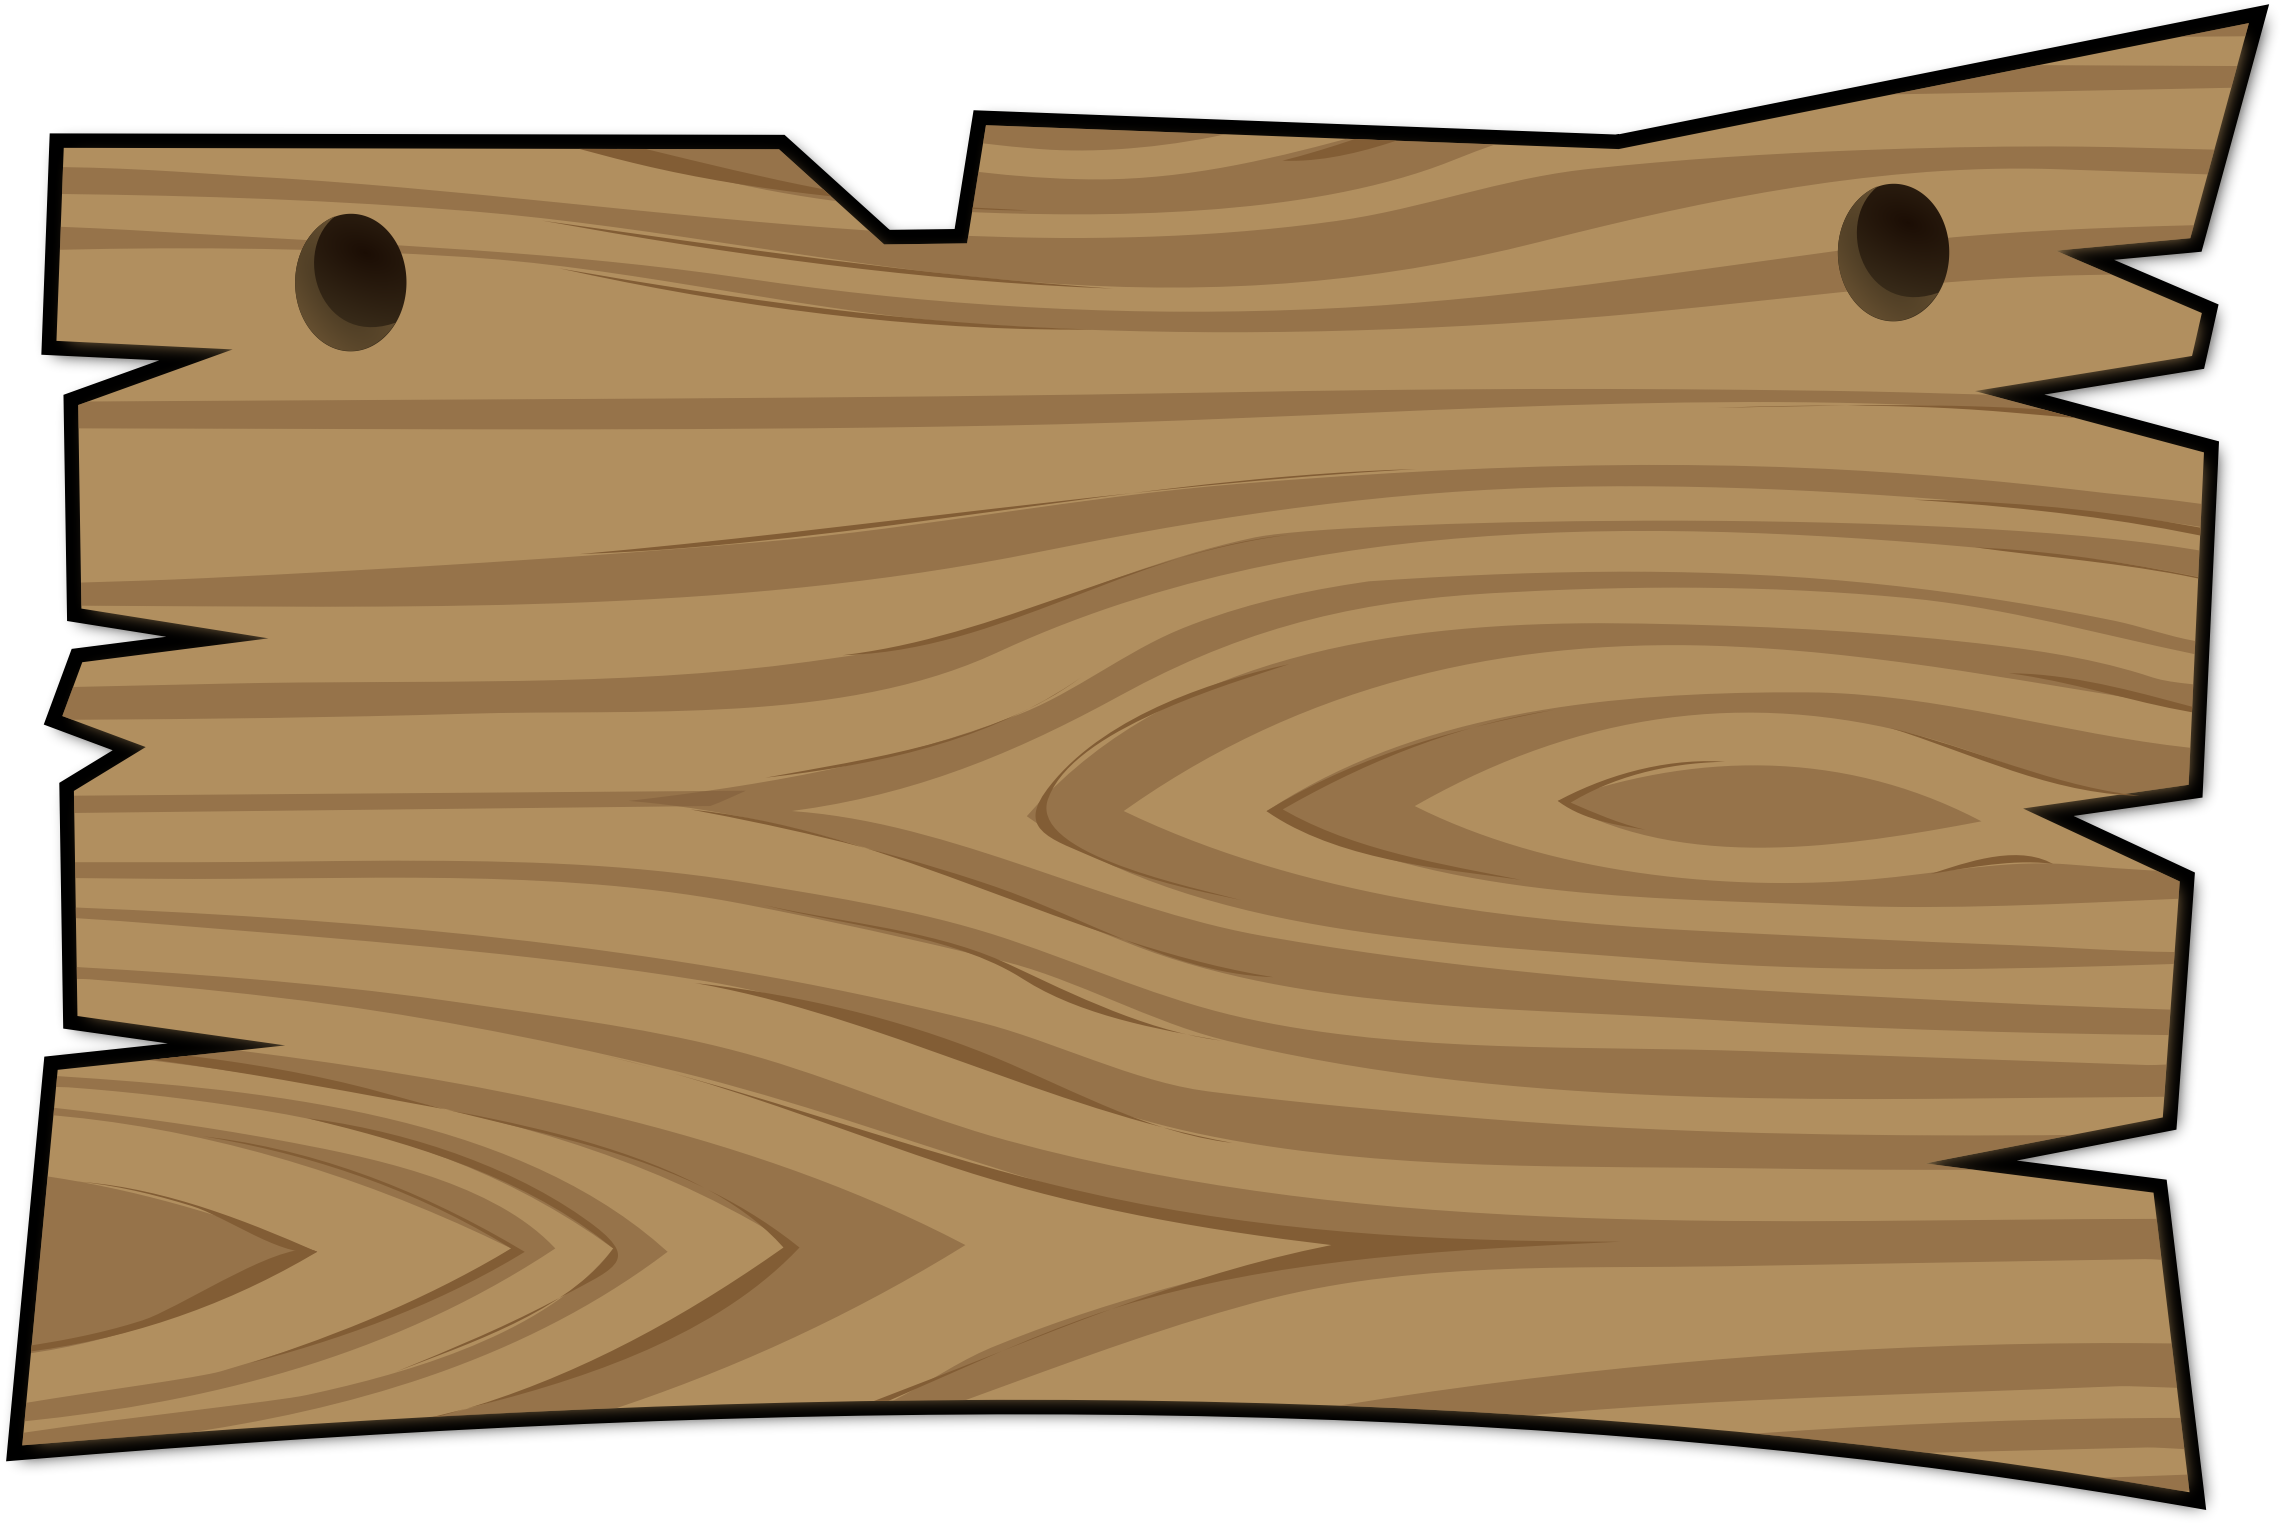 plaque clipart wood plaque